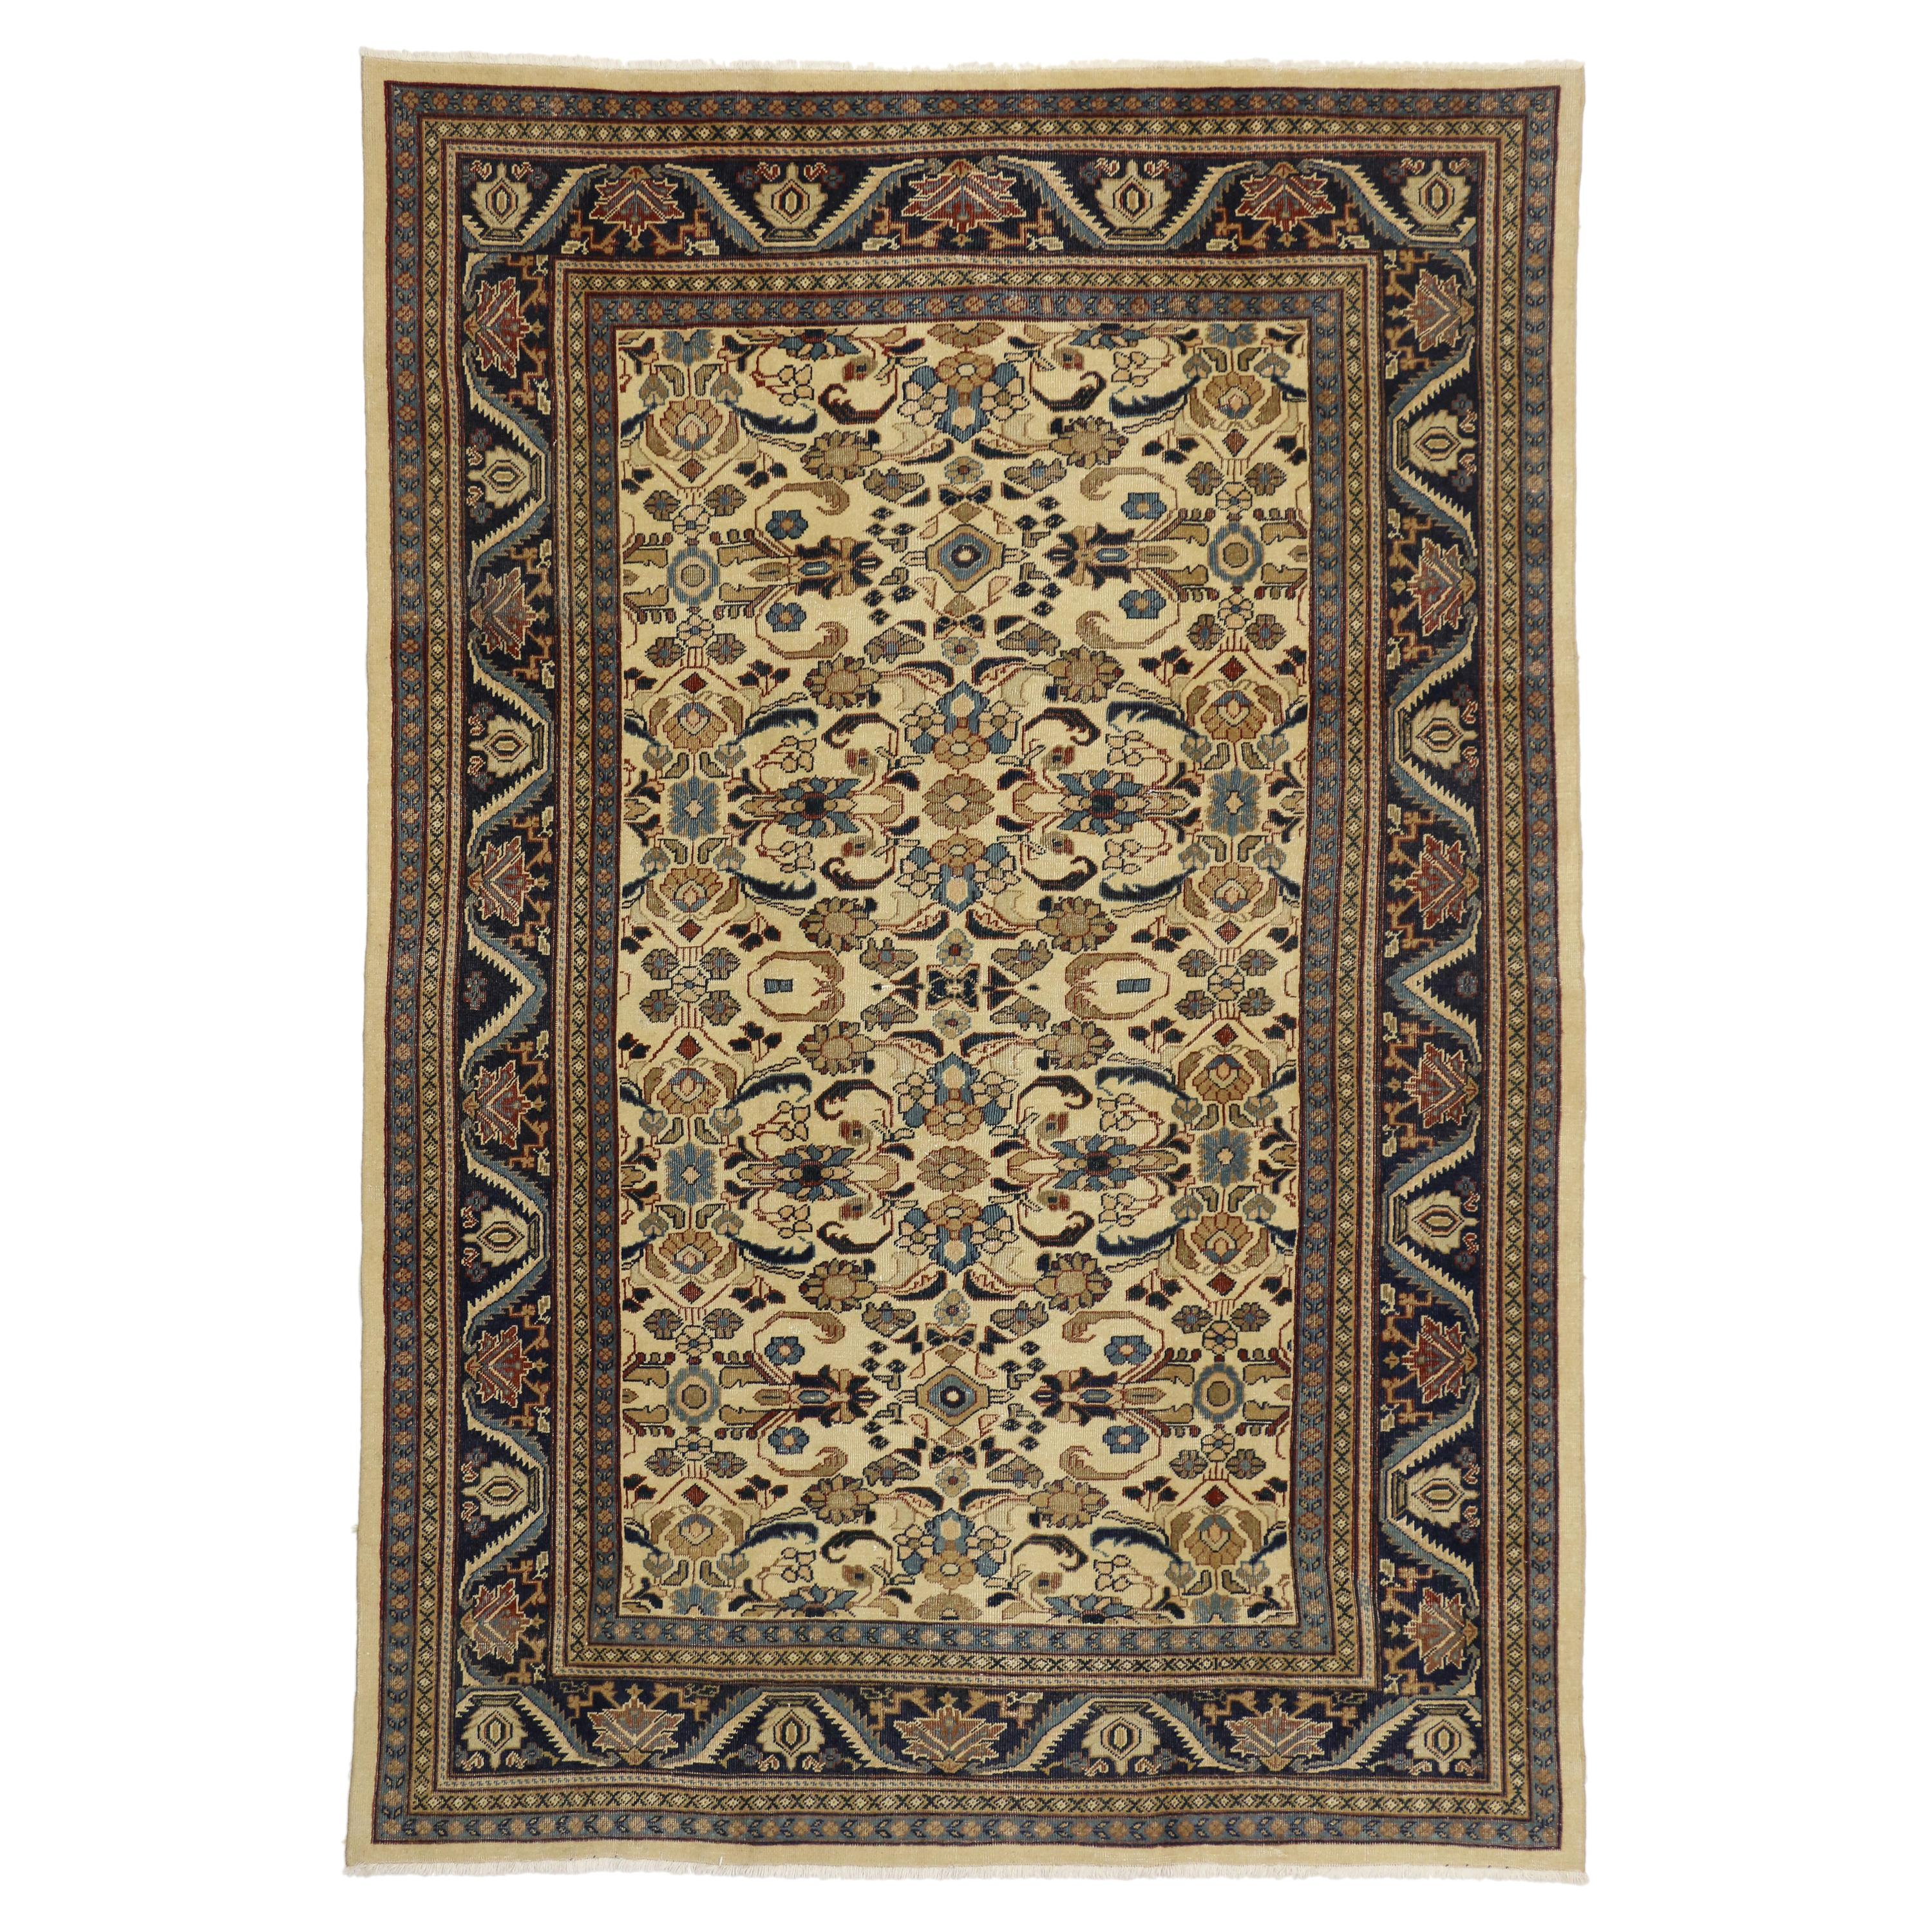 Distressed Vintage Persian Mahal Area Rug with Rustic Artisan Style